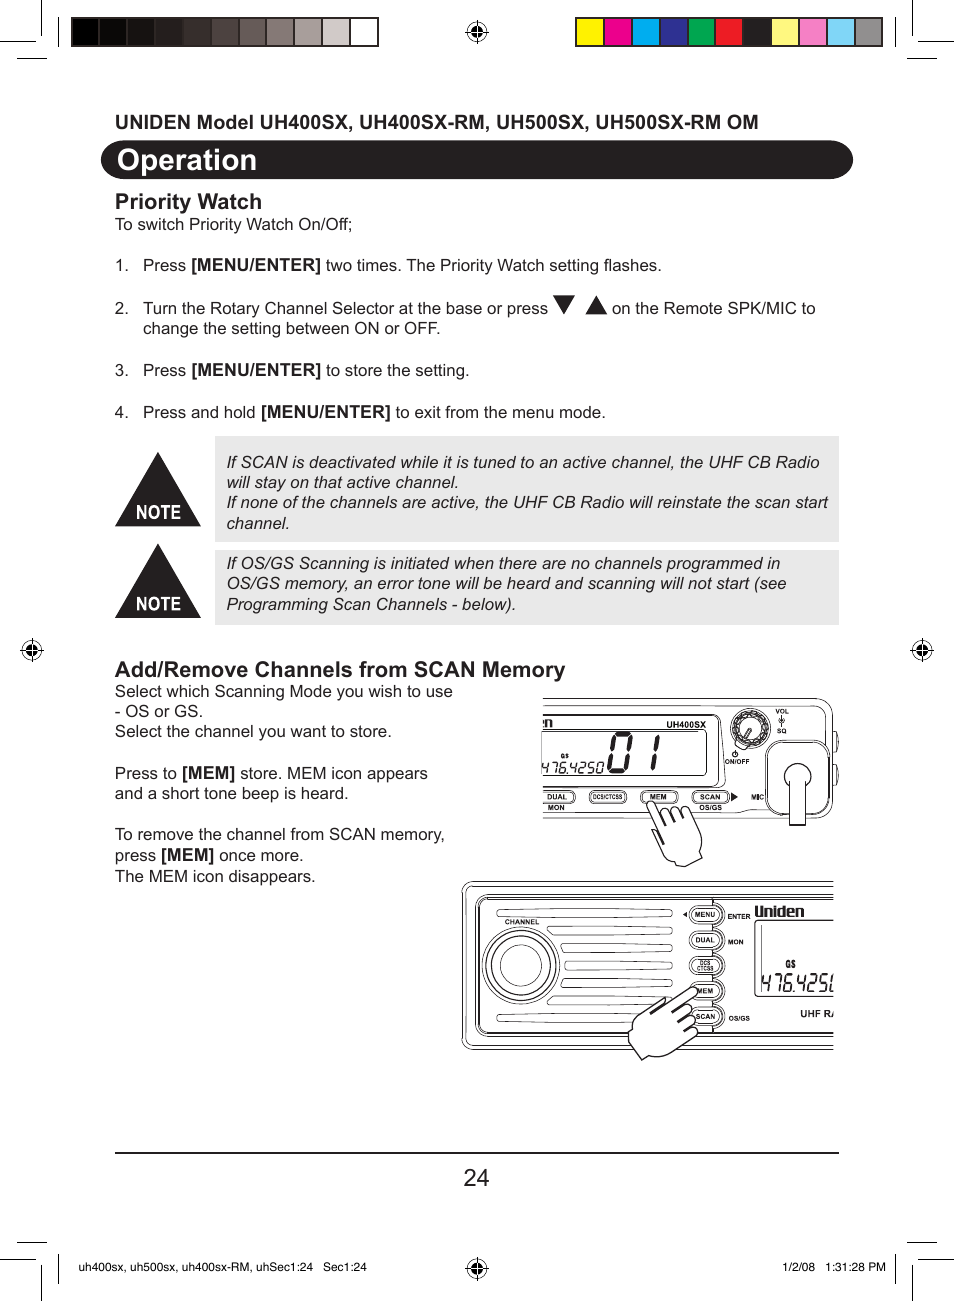 operation priority watch uniden uh400sx user manual page 26 36 rh manualsdir com Uniden Bearcat Scanner Manual Uniden Home Security System